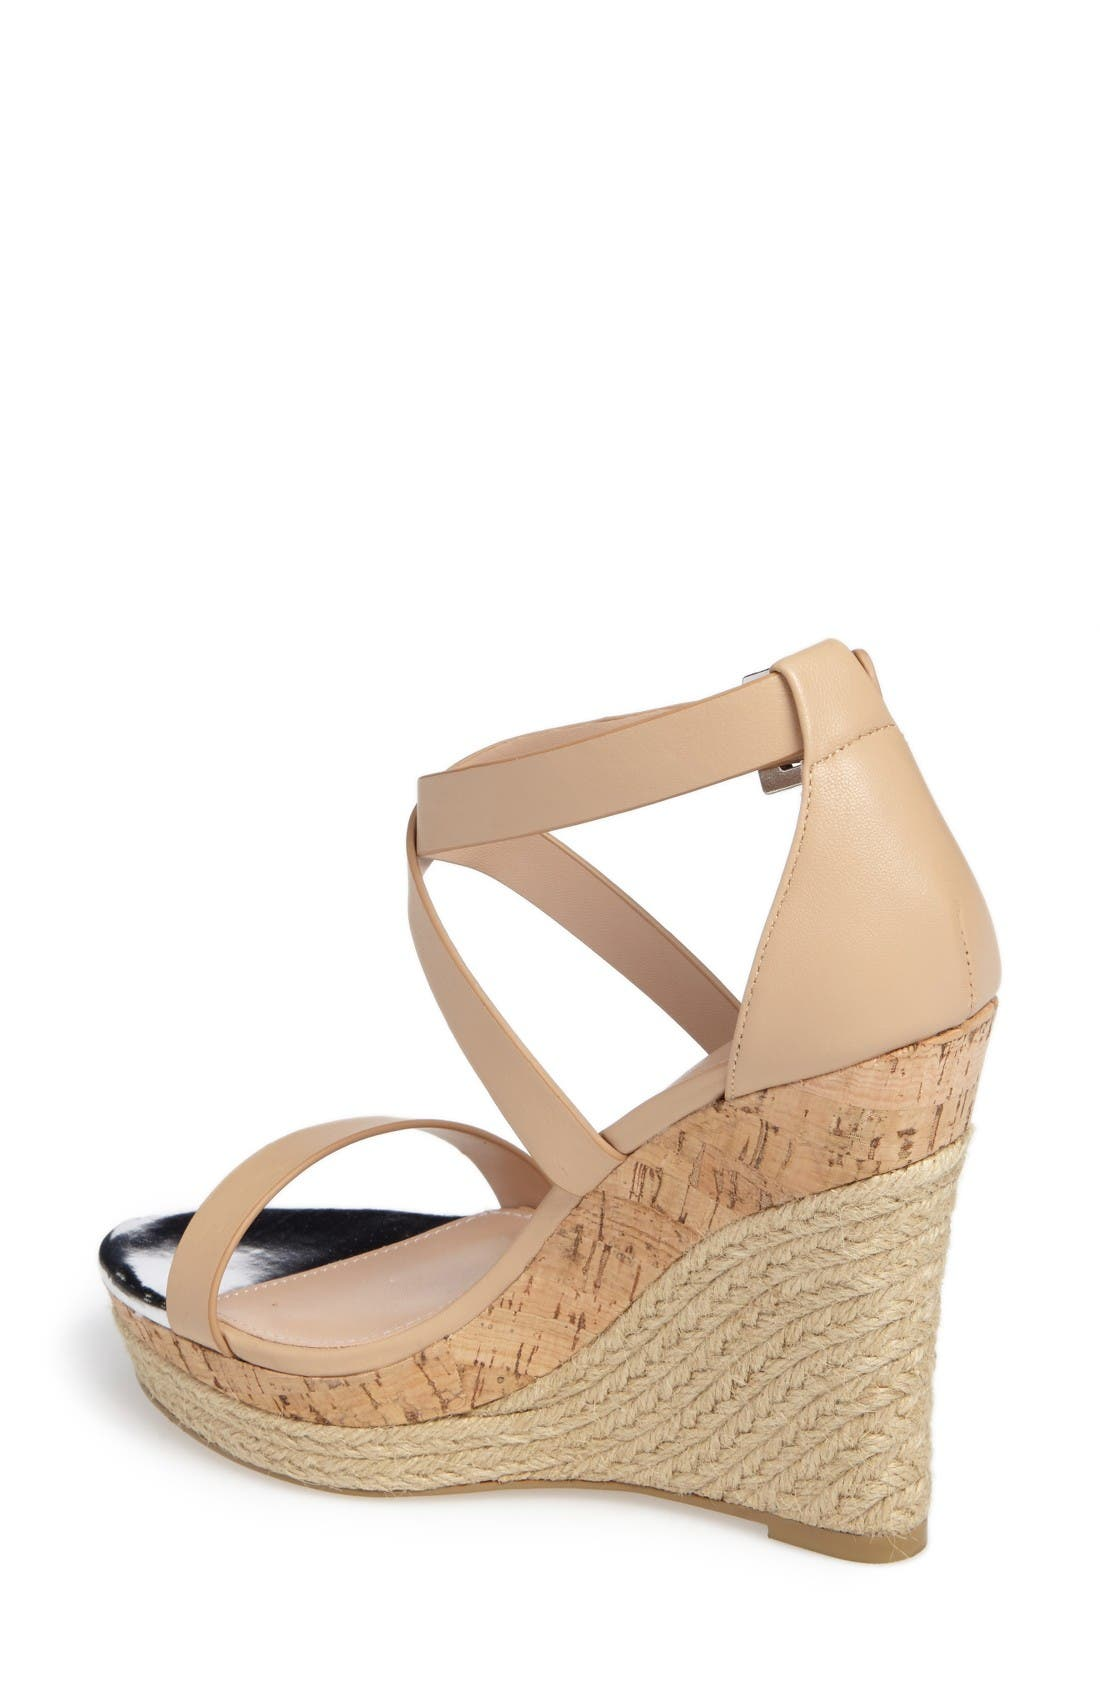 Aden Platform Wedge Sandal,                             Alternate thumbnail 2, color,                             Nude Leather